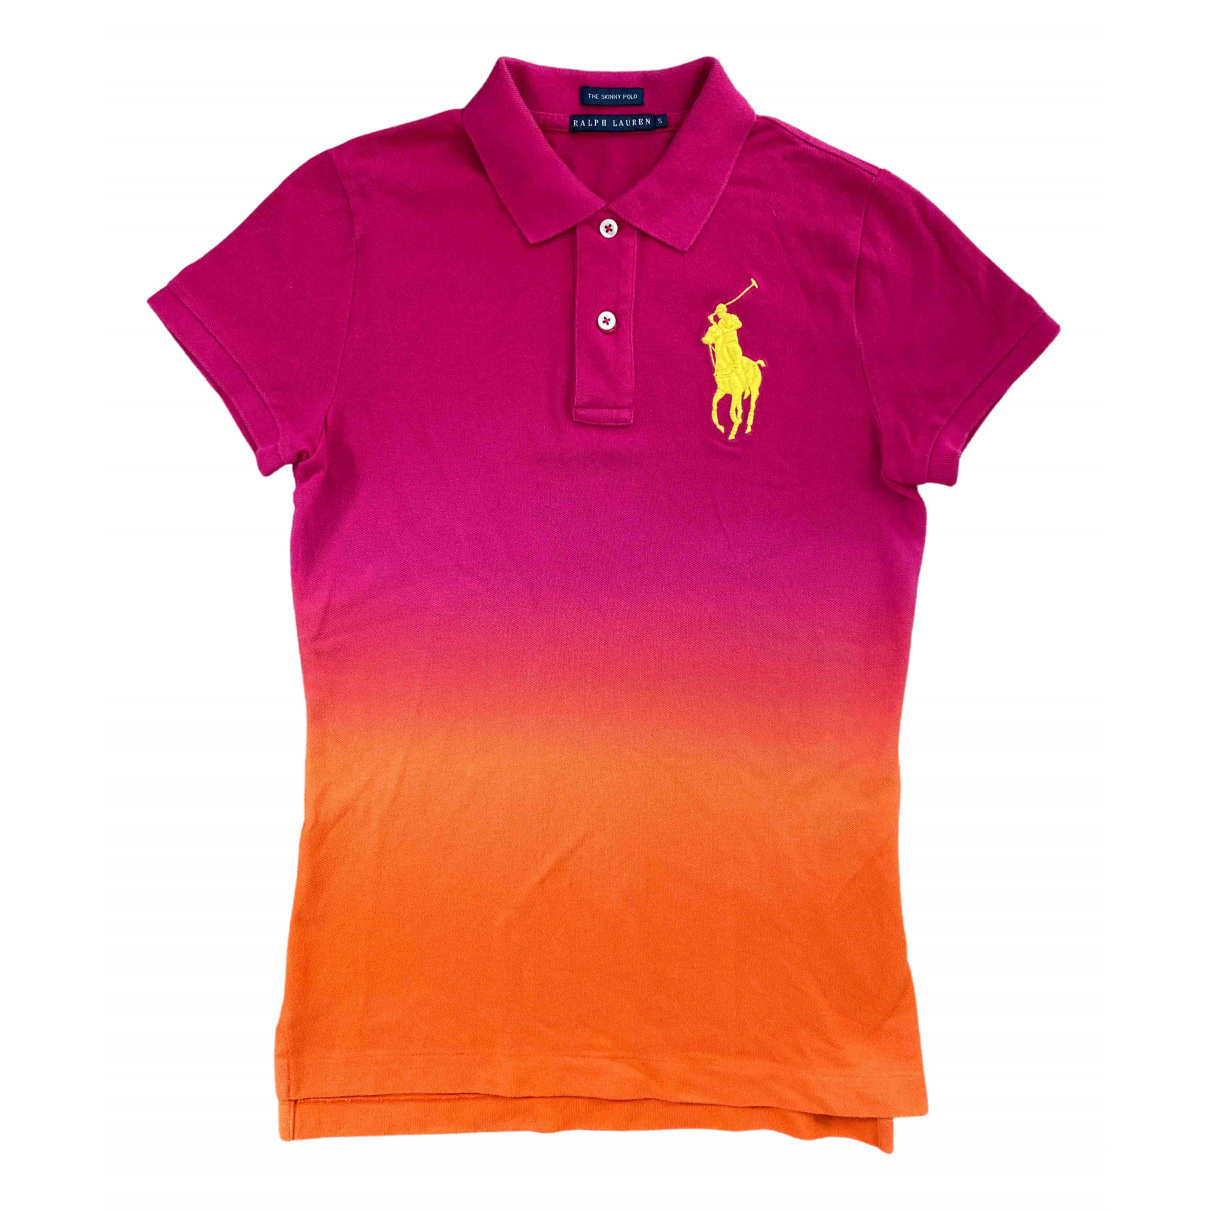 Polo Ralph Lauren Polo ajusté manches courtes Multicolour Cotton  top for Women 36 FR